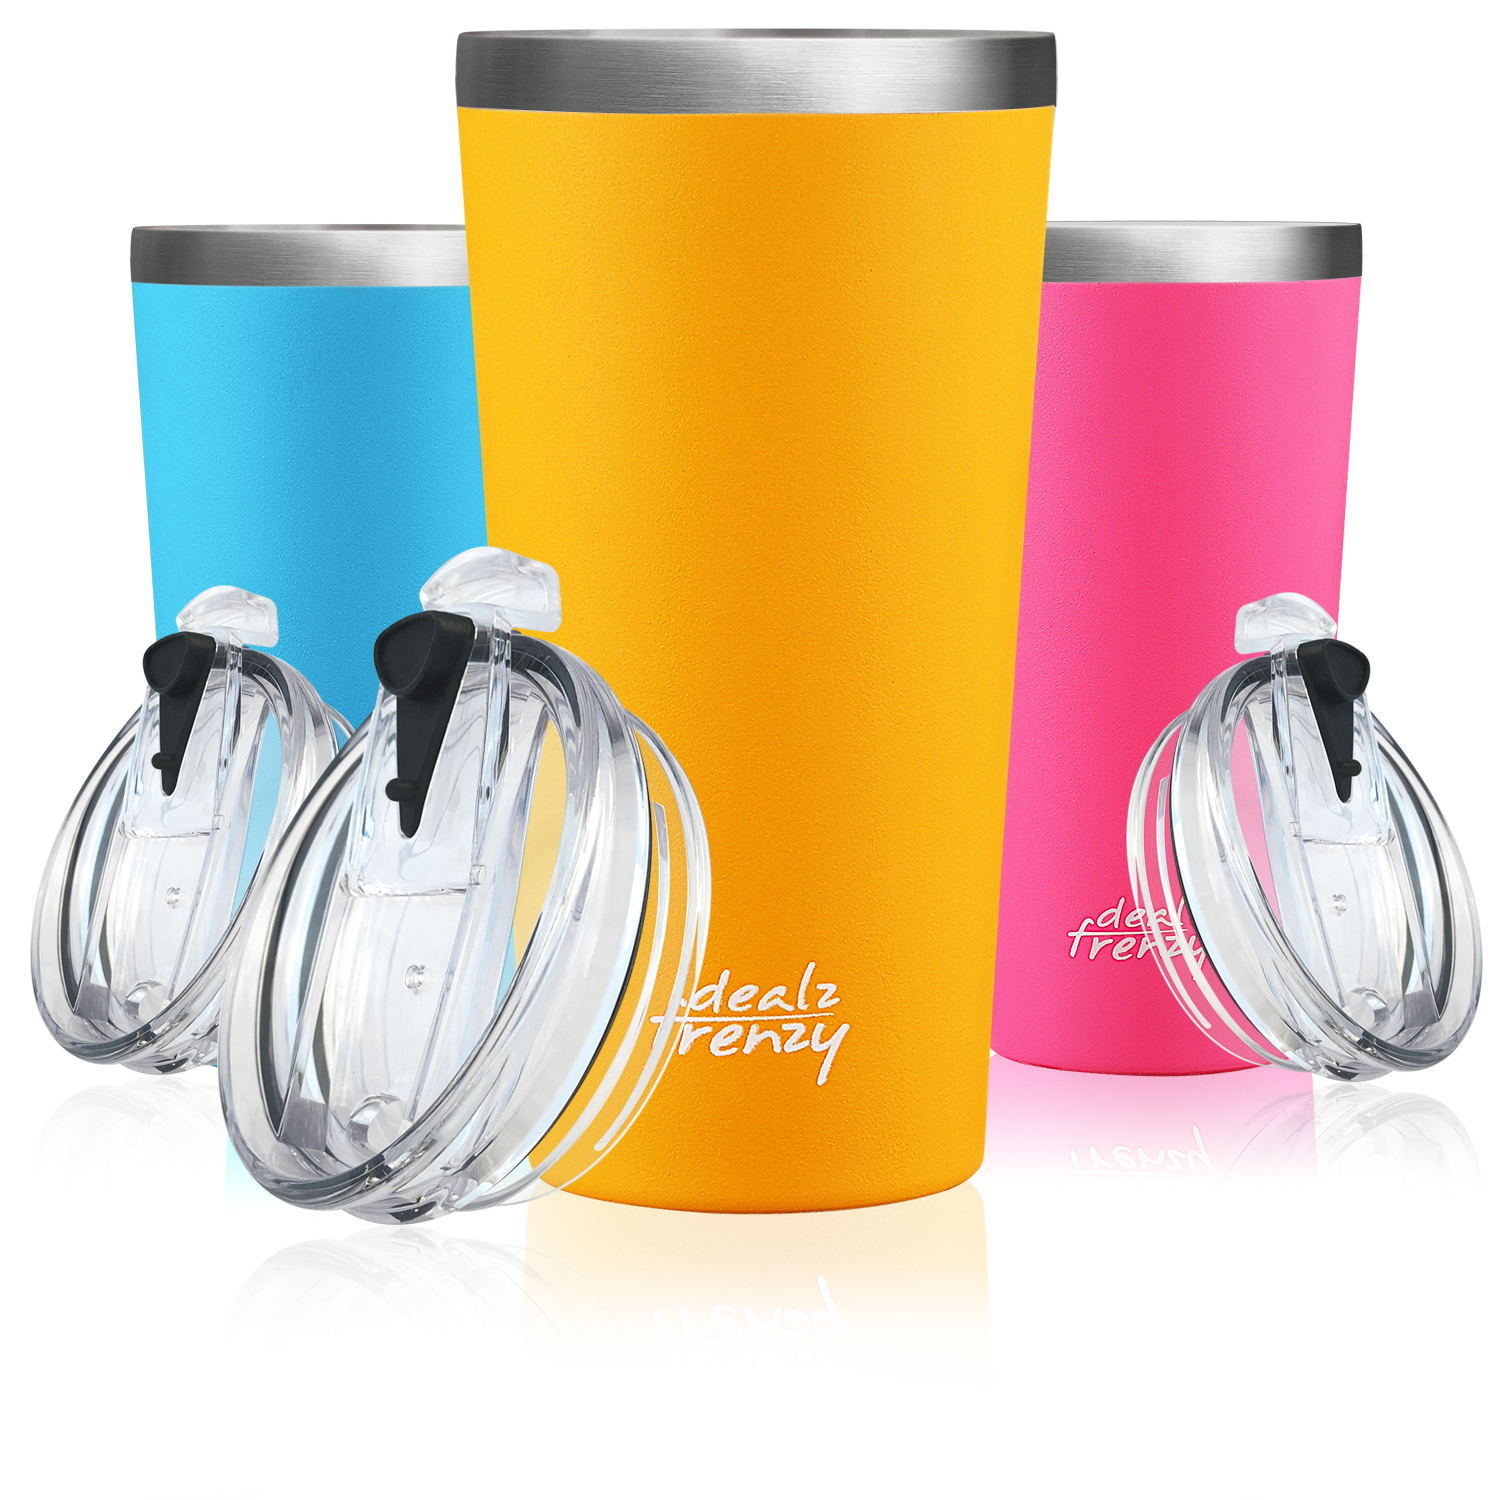 Need last-minute gifts?Stainless Steel Water Bottles & Tumblers  Save 20% off!